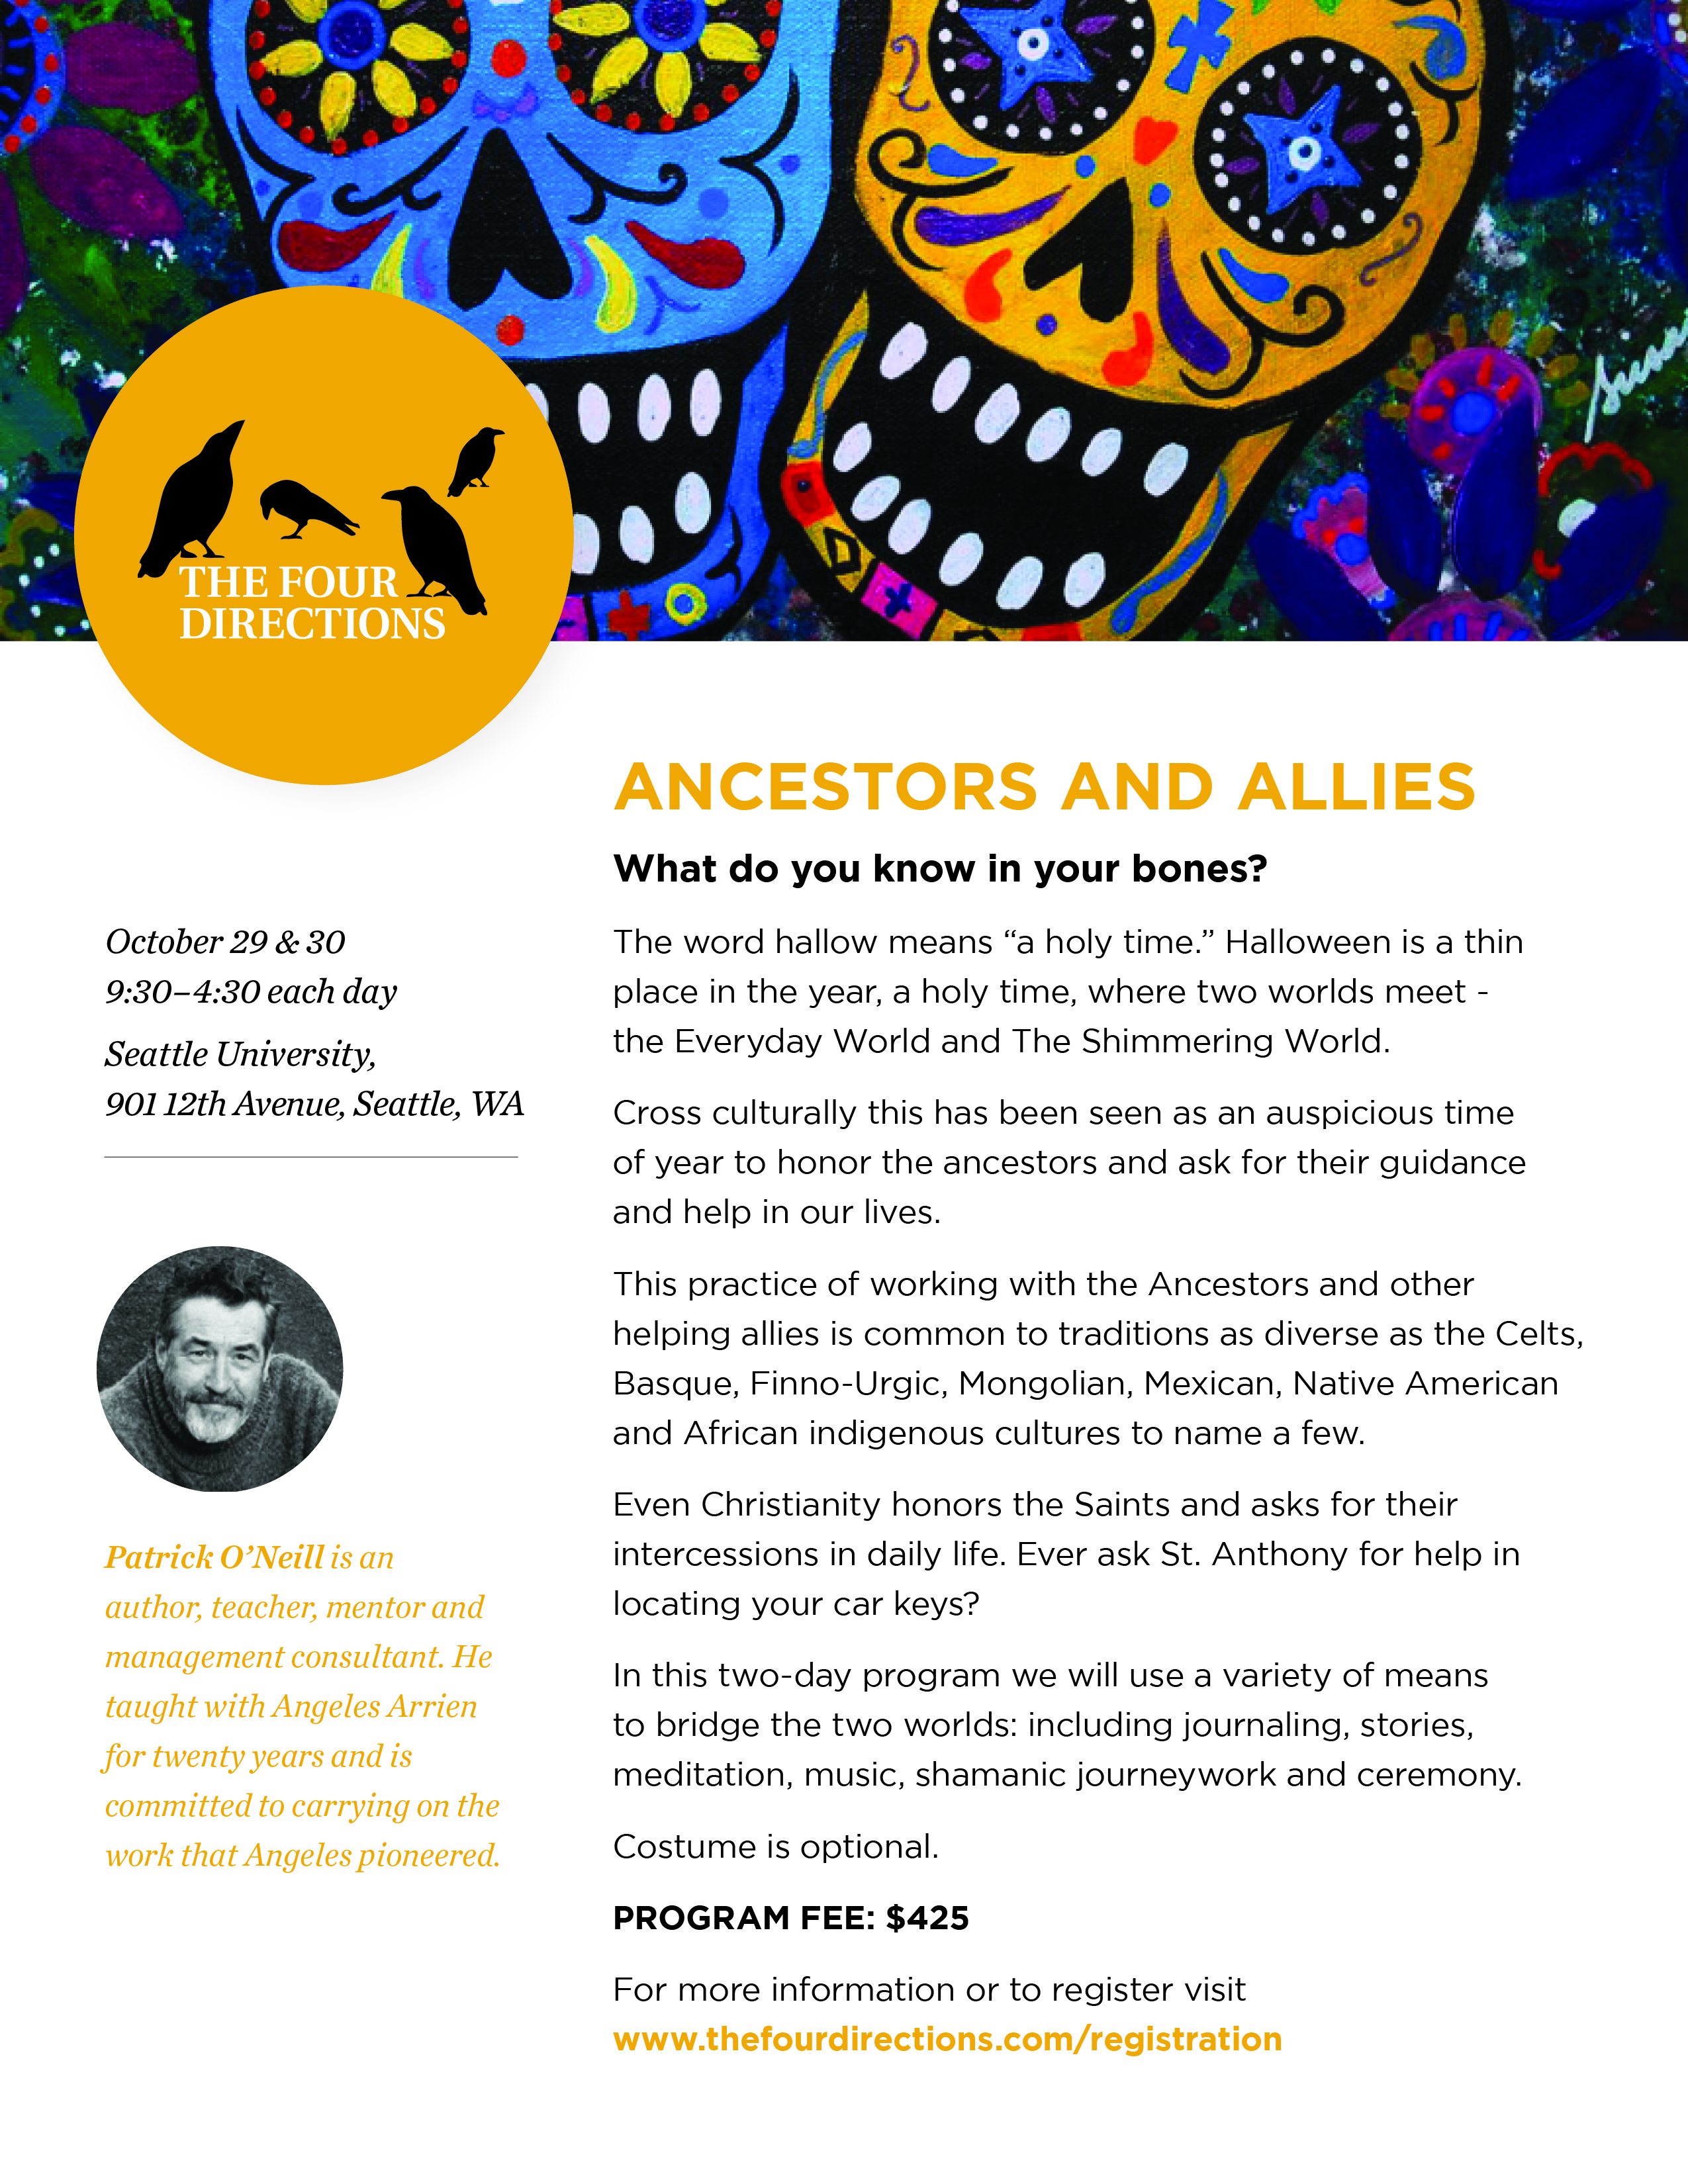 Ancestors & Allies with Patrick O'Neill